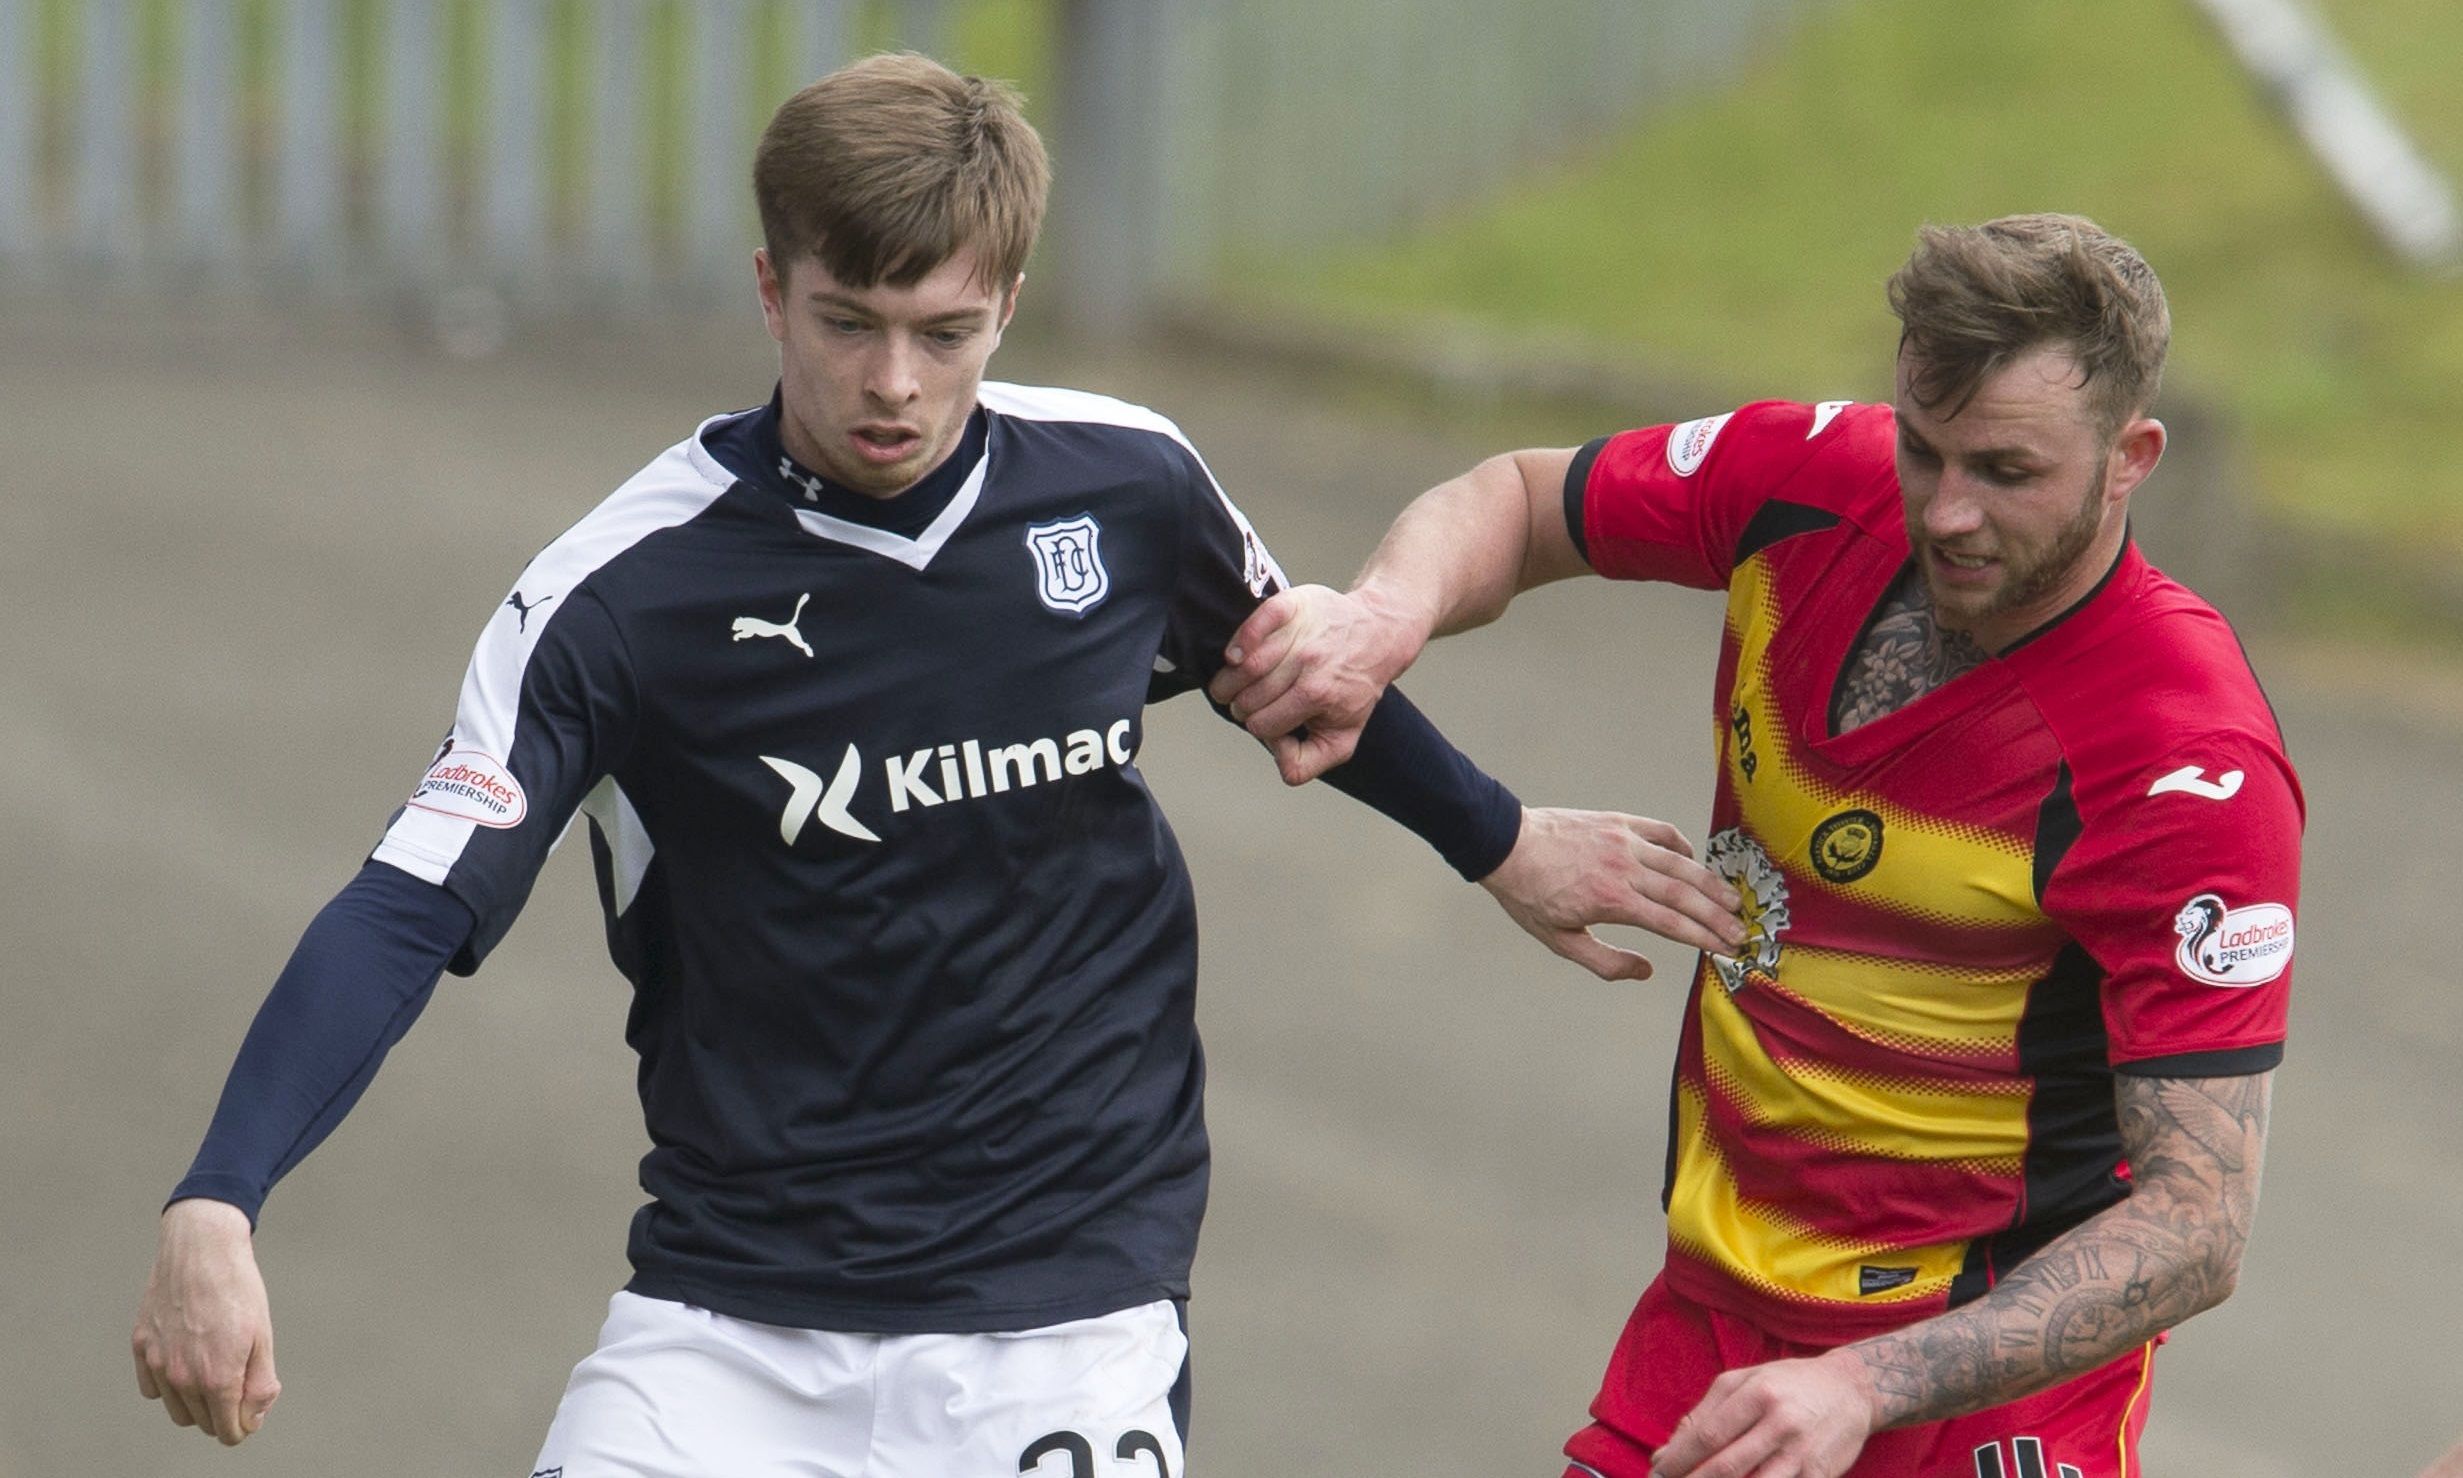 Dundee's Craig Wighton tussles with Christie Eilliott of Partick in a clash last season.